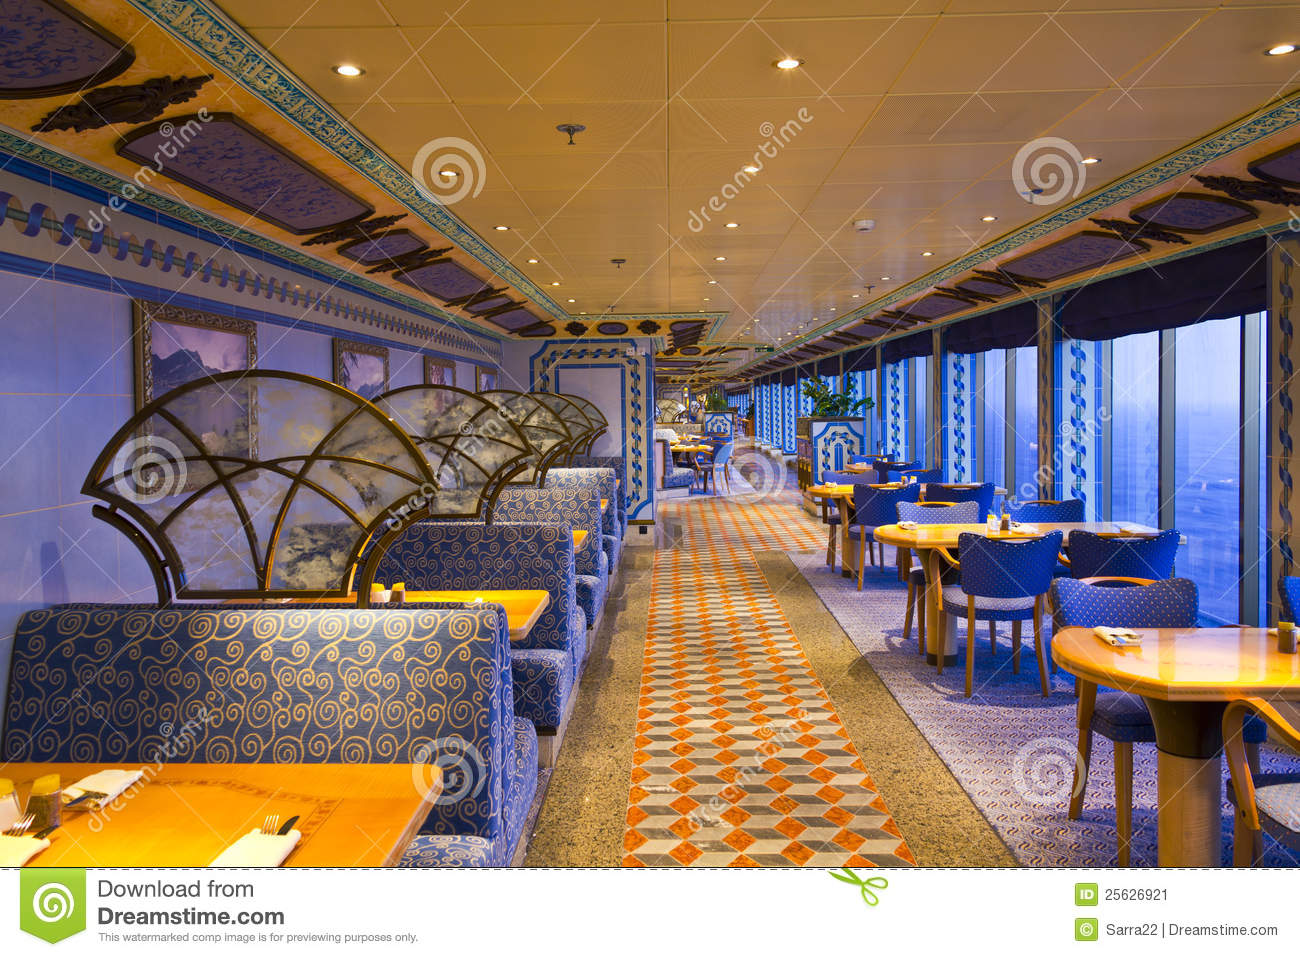 An Elegant Deluxe Dining Hall In Cruise Ship Stock Image  : elegant deluxe dining hall cruise ship 25626921 from www.dreamstime.com size 1300 x 957 jpeg 263kB